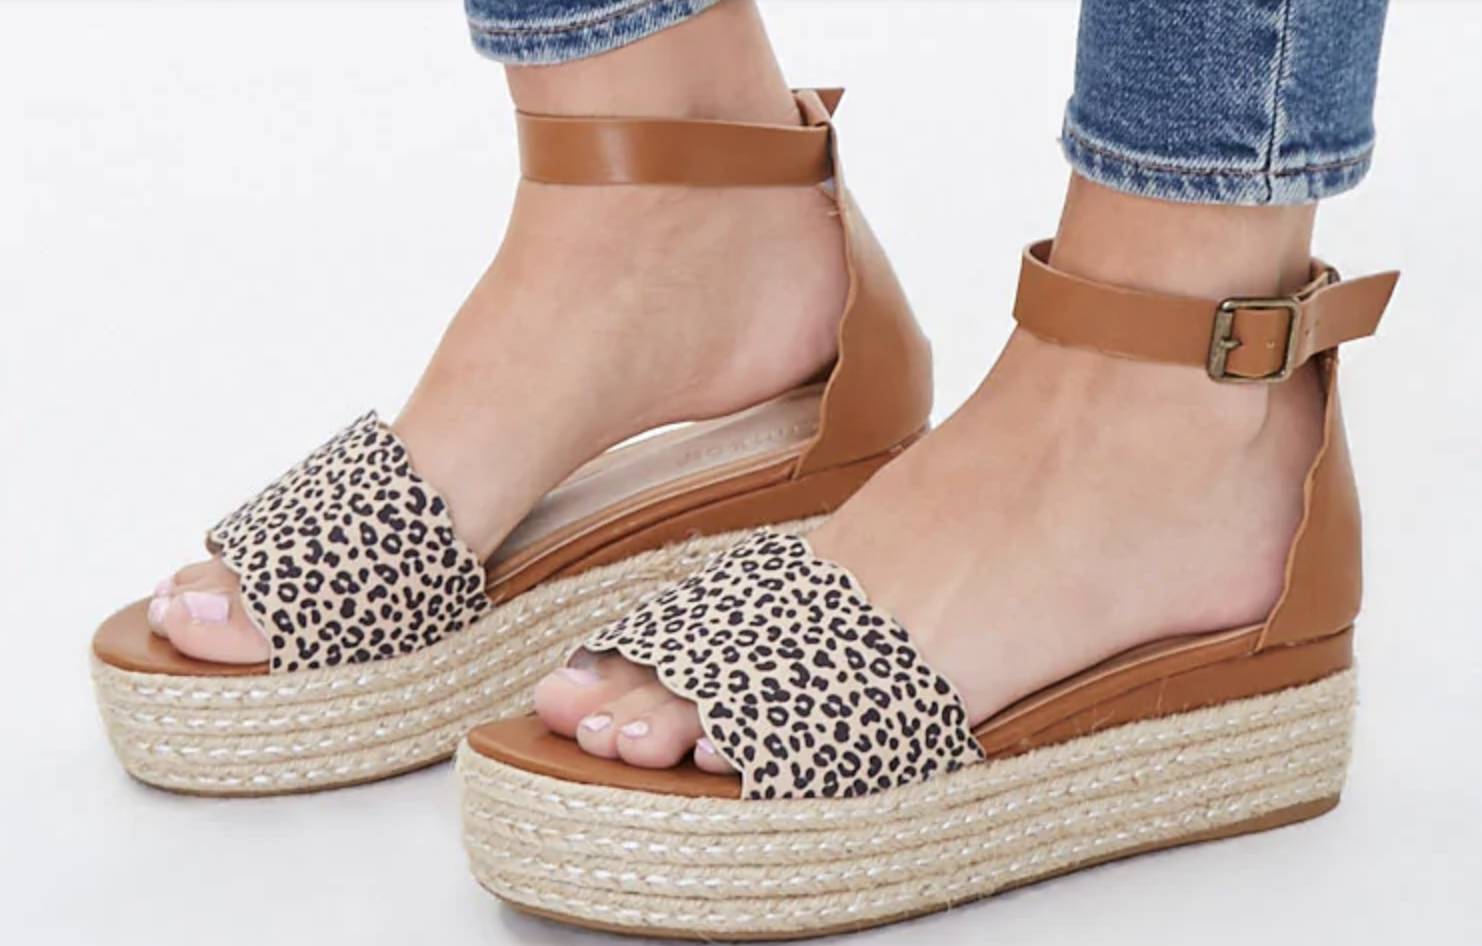 a pair of espadrilles with a straw-like platform, cognac colored straps around the ankle, and a leopard design across the toes with a scalloped cut